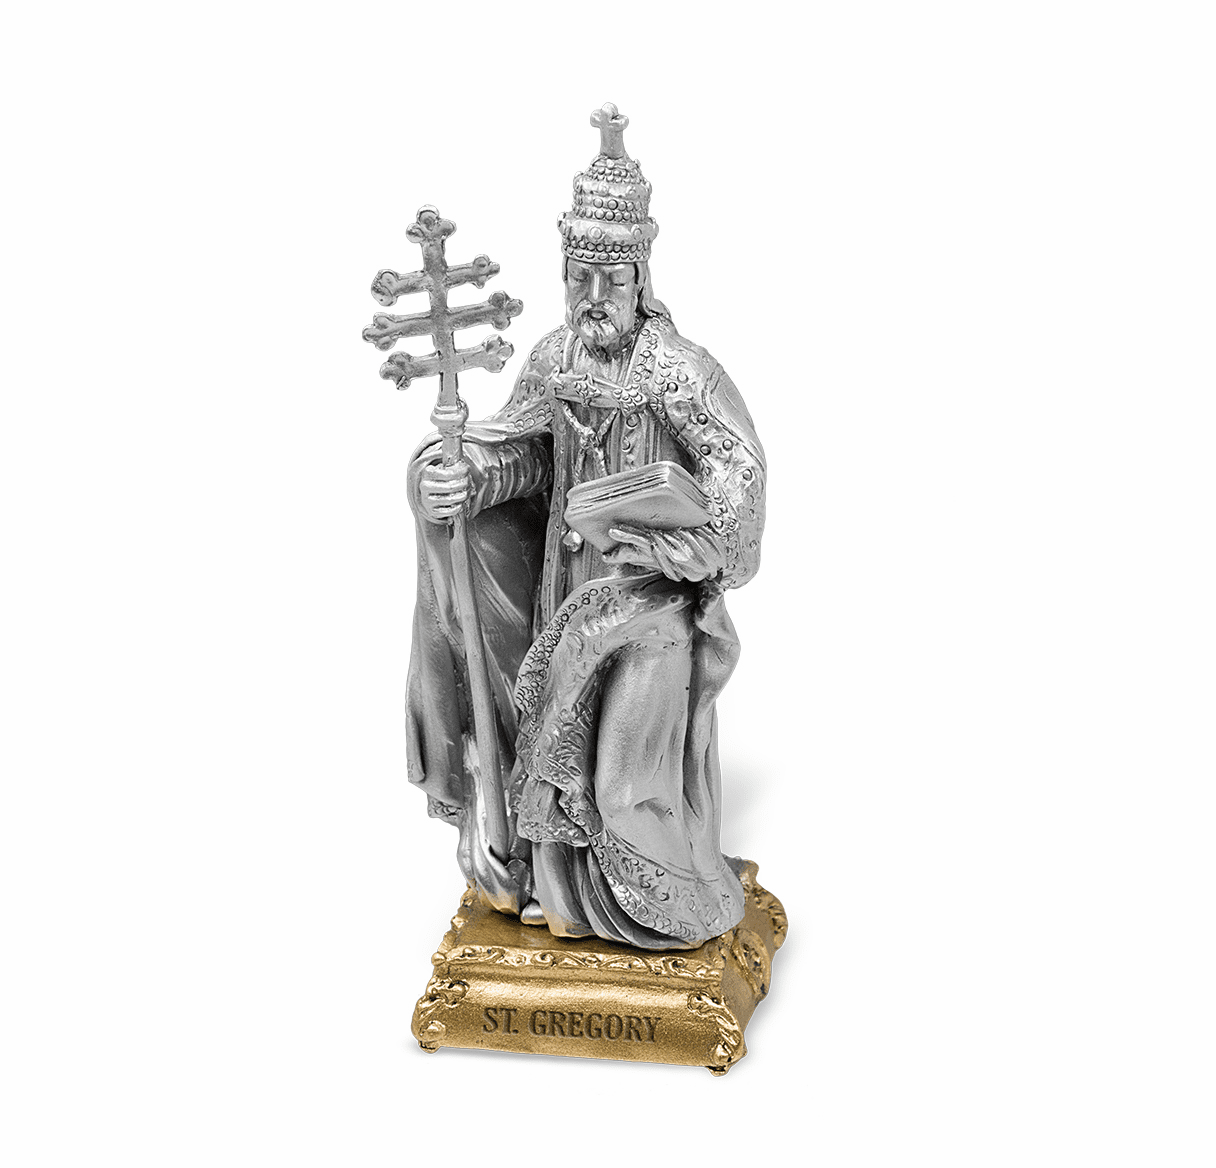 St Gregory Patron Saint Pewter Statue on Gold Tone Base by Hirten